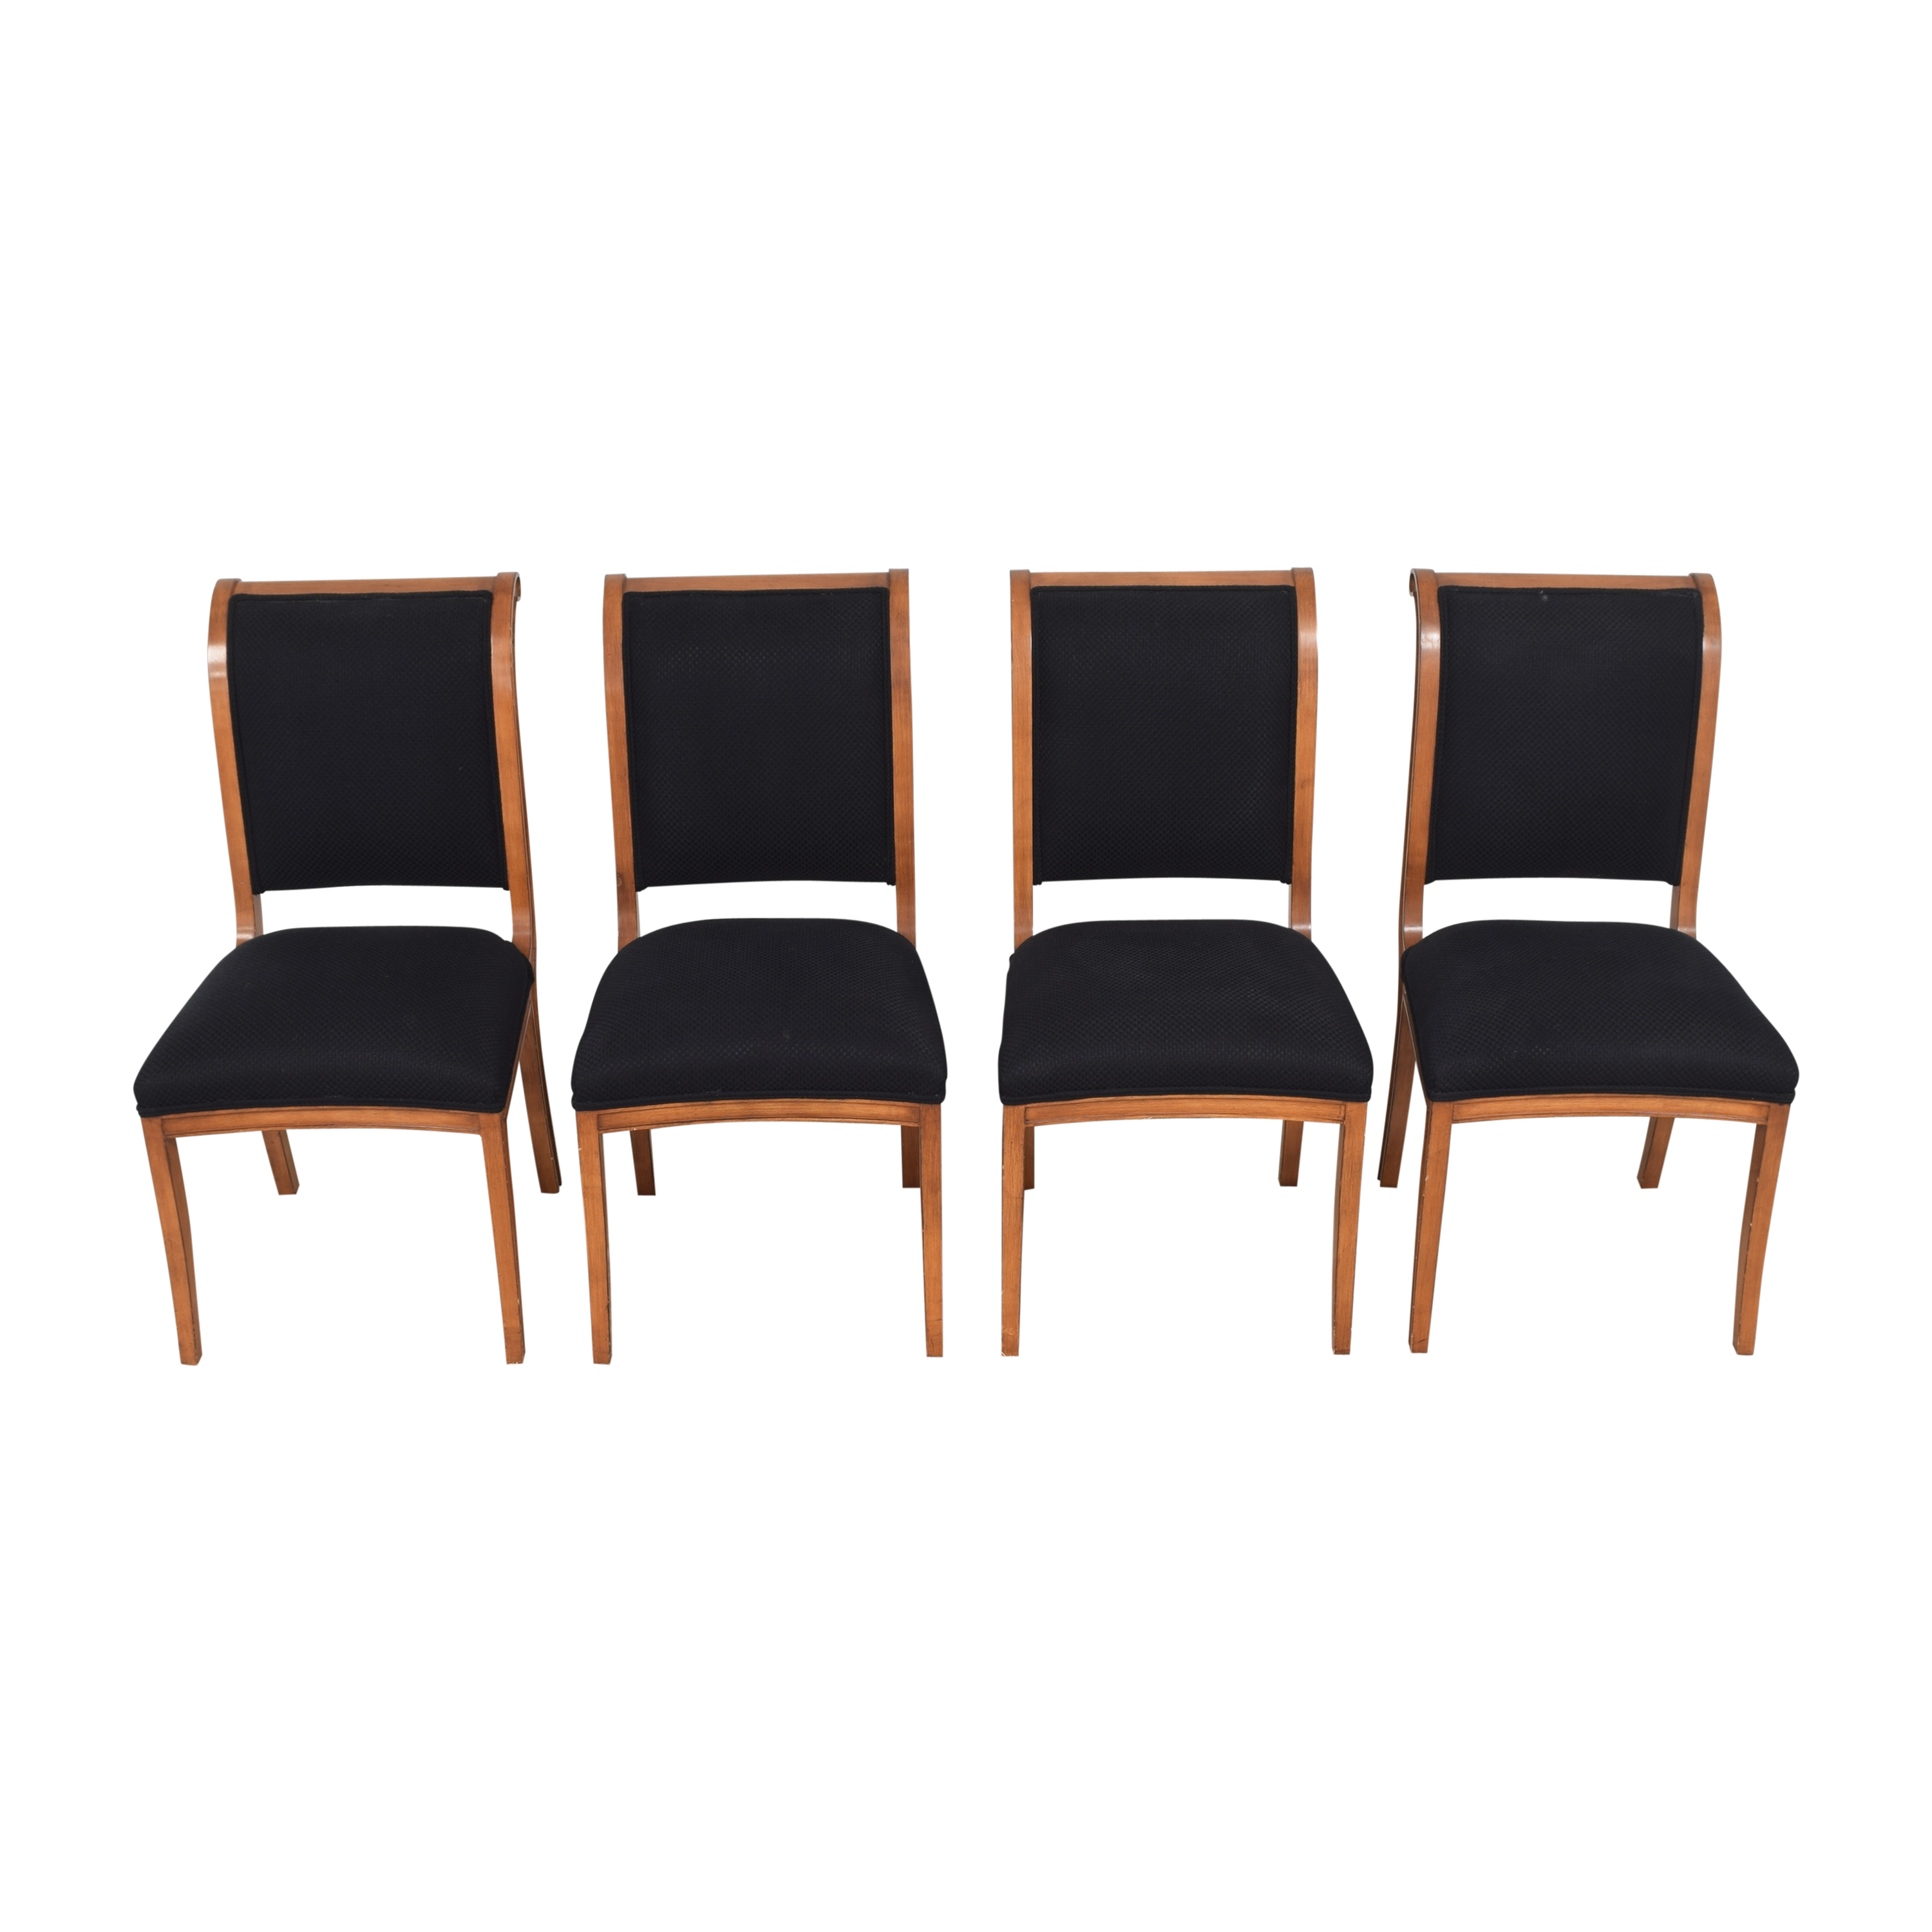 Custom Upholstered Dining Chairs black and brown